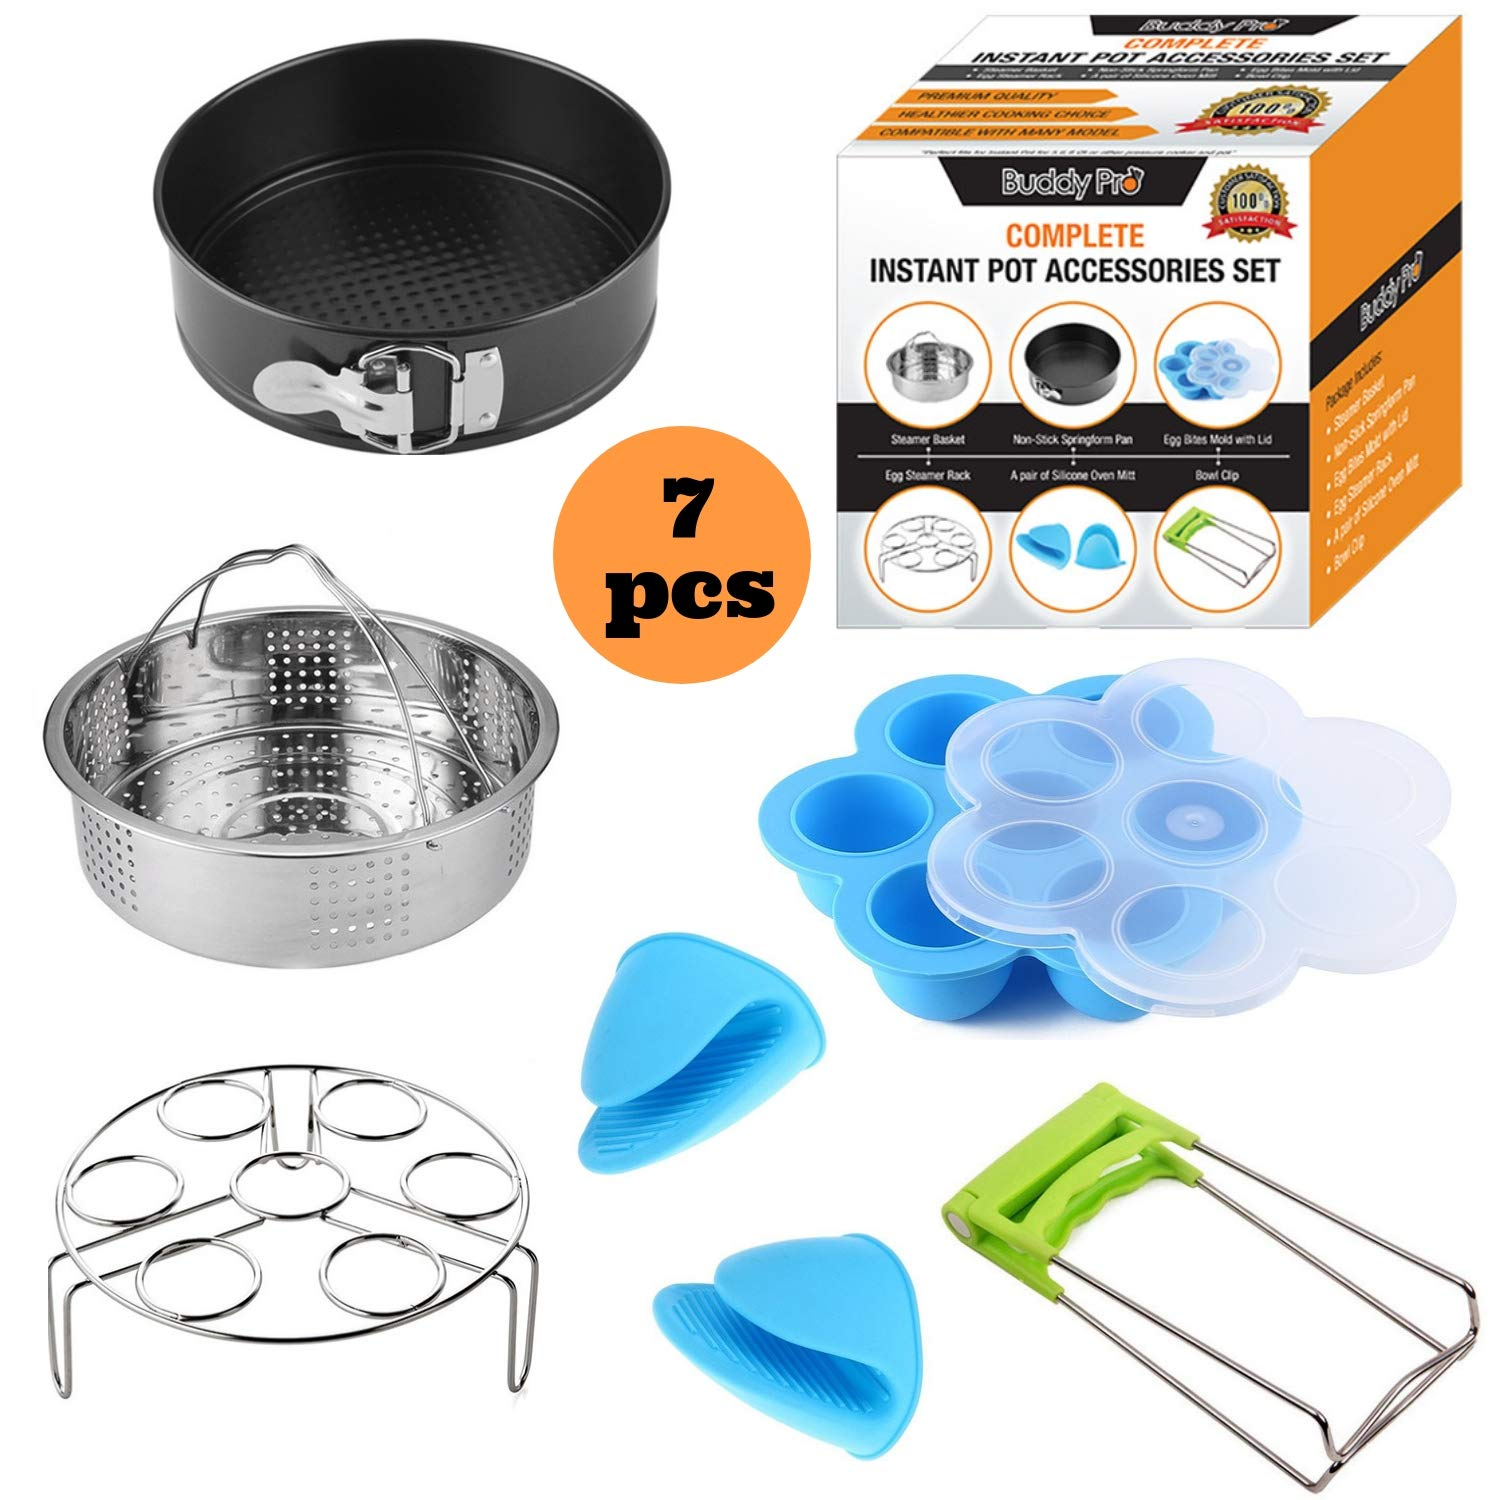 Buddy Pro Instant Pot Accessories Set Fits 5,6,8 Qt Pressure Cooker/7 Piece Complete Instapot Accessory Kit/Steamer Basket/Silicone Egg Bite Mold/Non Stick SpringForm Pan/Egg Steamer Rack/Oven Mitt